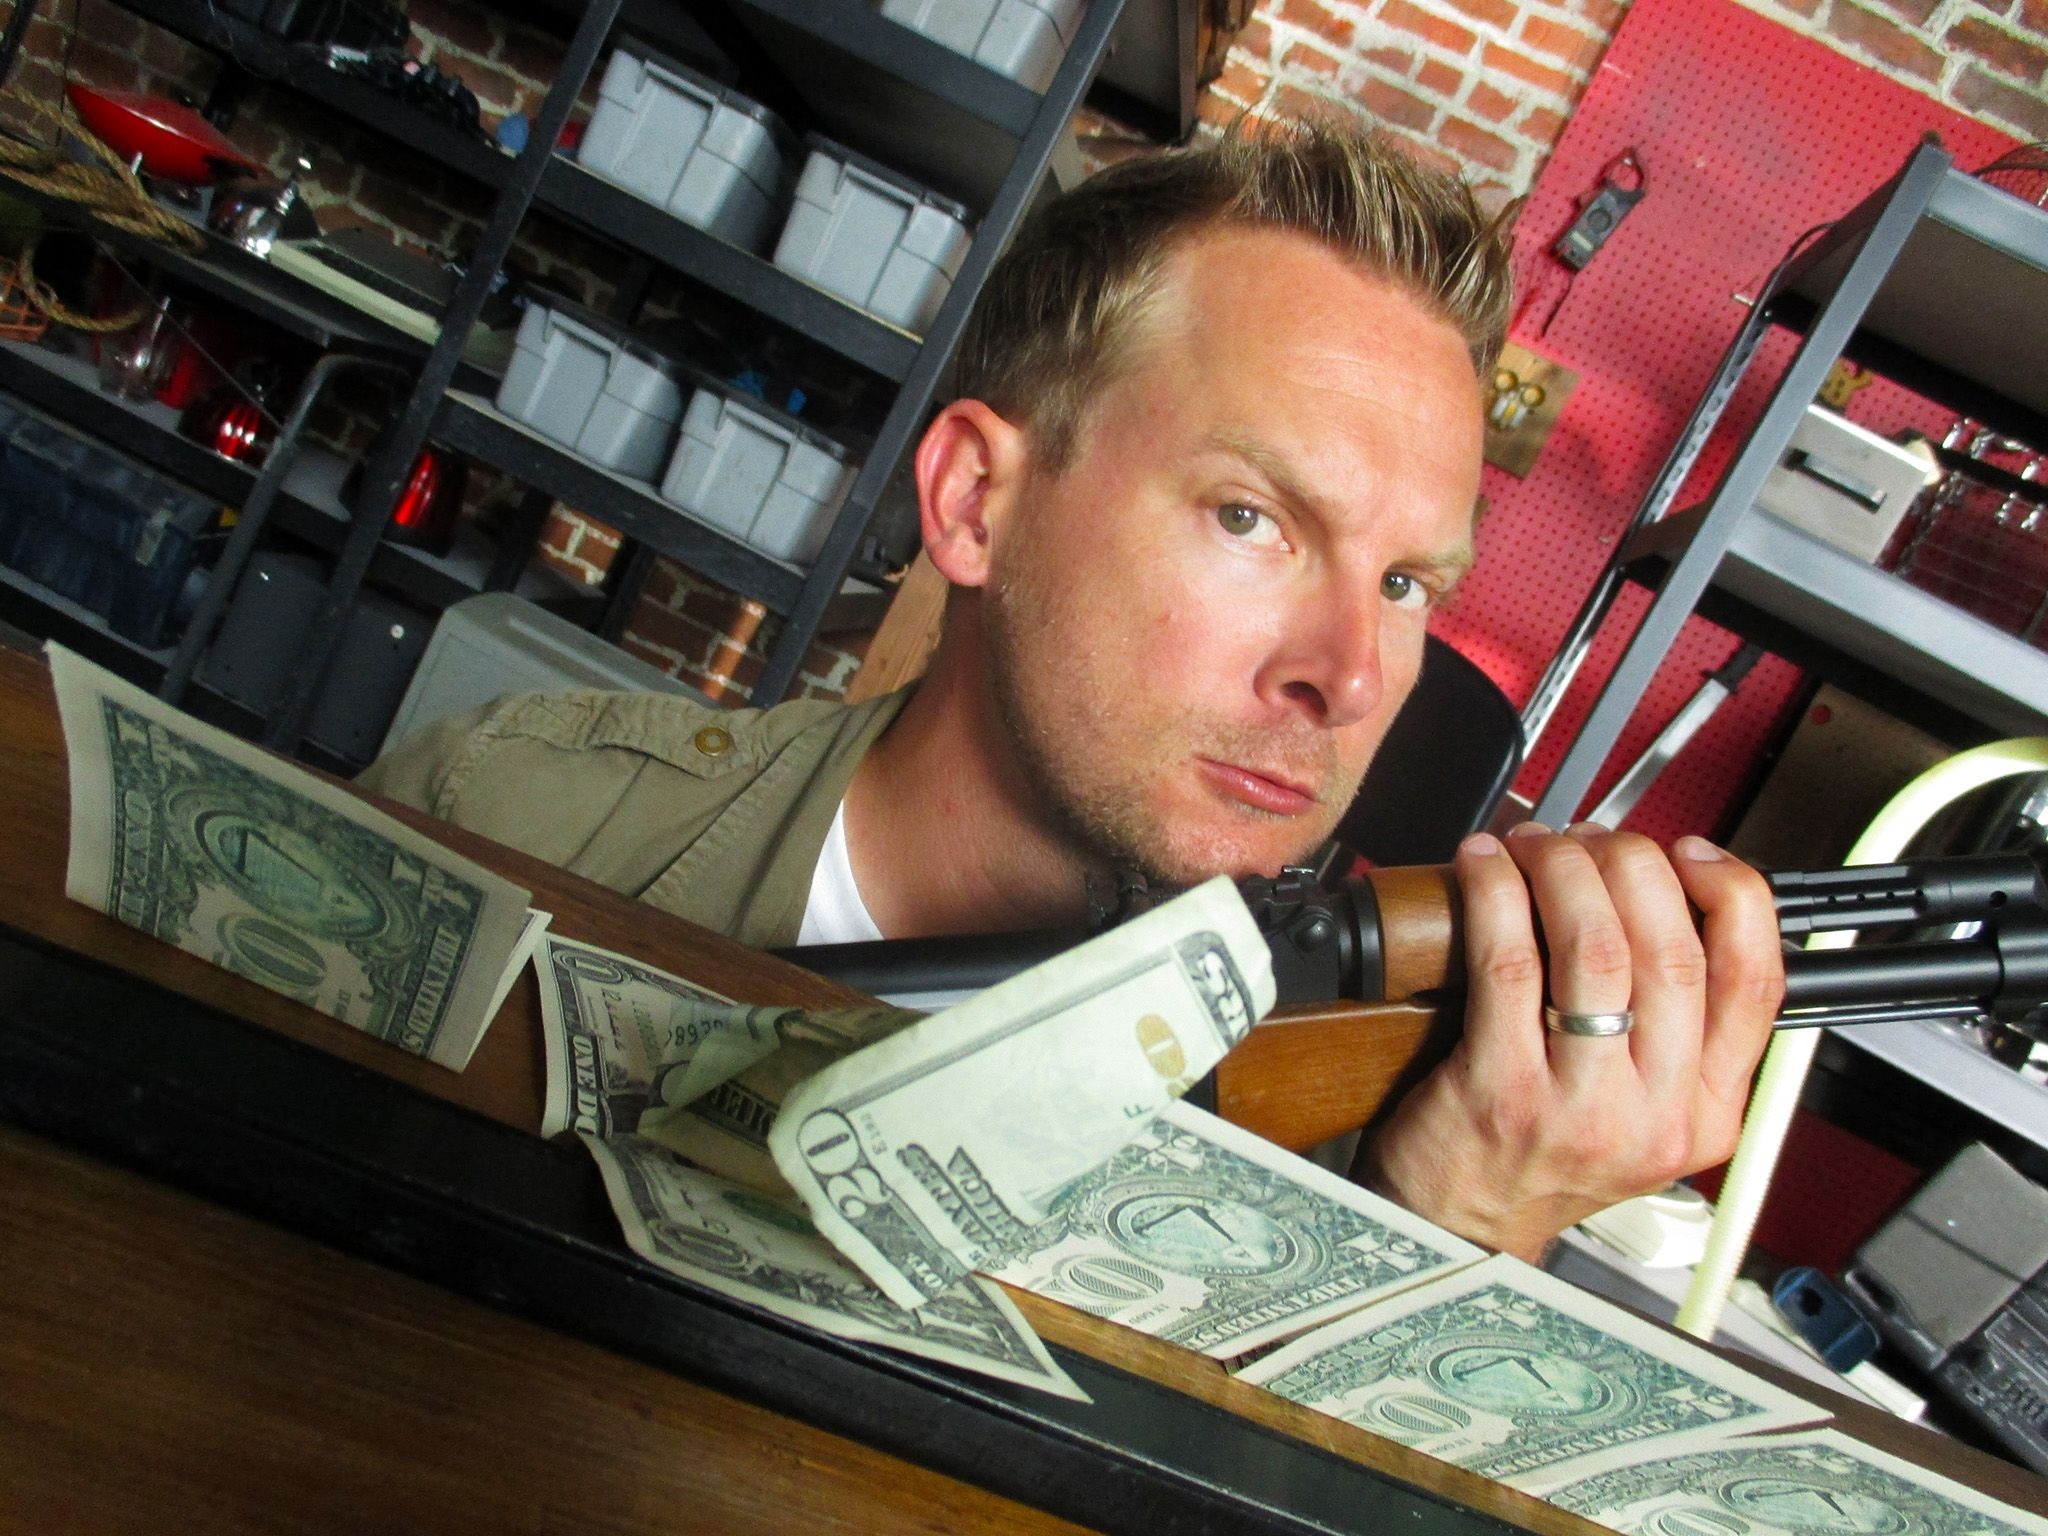 Los Angeles, CA.: In the workshop, Brian poses with a rifle next to a line of bills and a... [Photo of the day - April 2015]